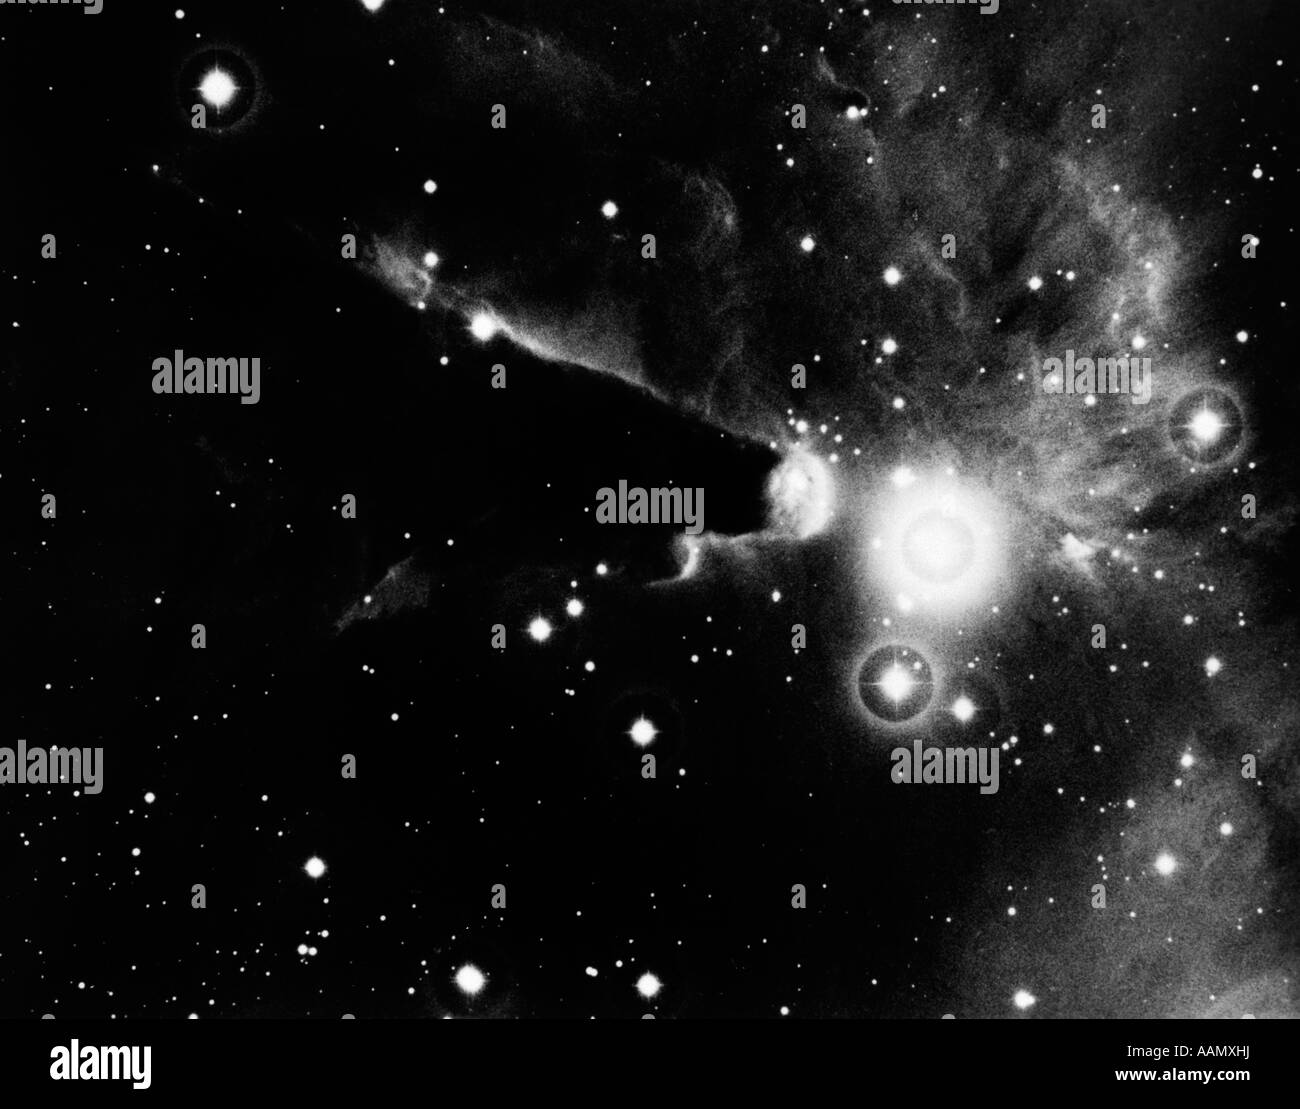 1950s OUTER SPACE SHOT OF CLOUDINESS IN STAR CLUSTER - Stock Image